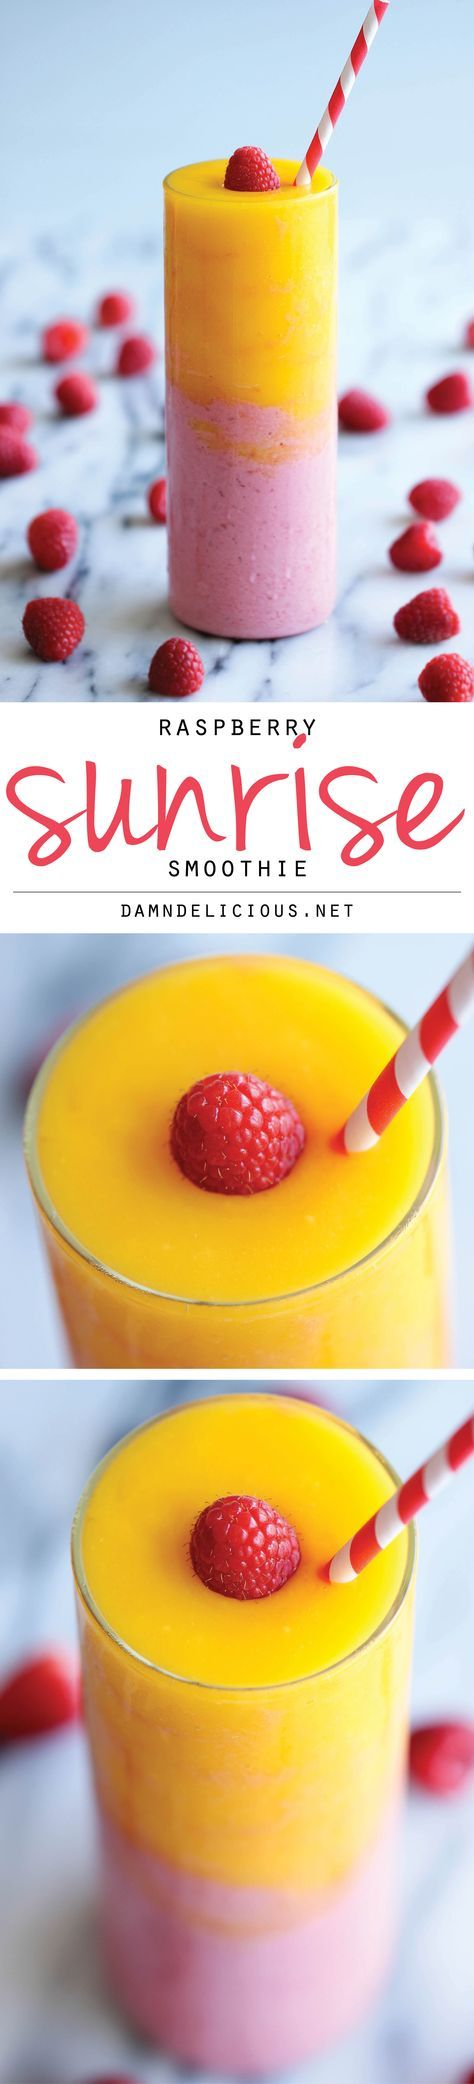 Raspberry Sunrise Smoothie Recipe via Damn Delicious - 4-ingredient raspberry mango smoothie - so easy and amazingly refreshing!